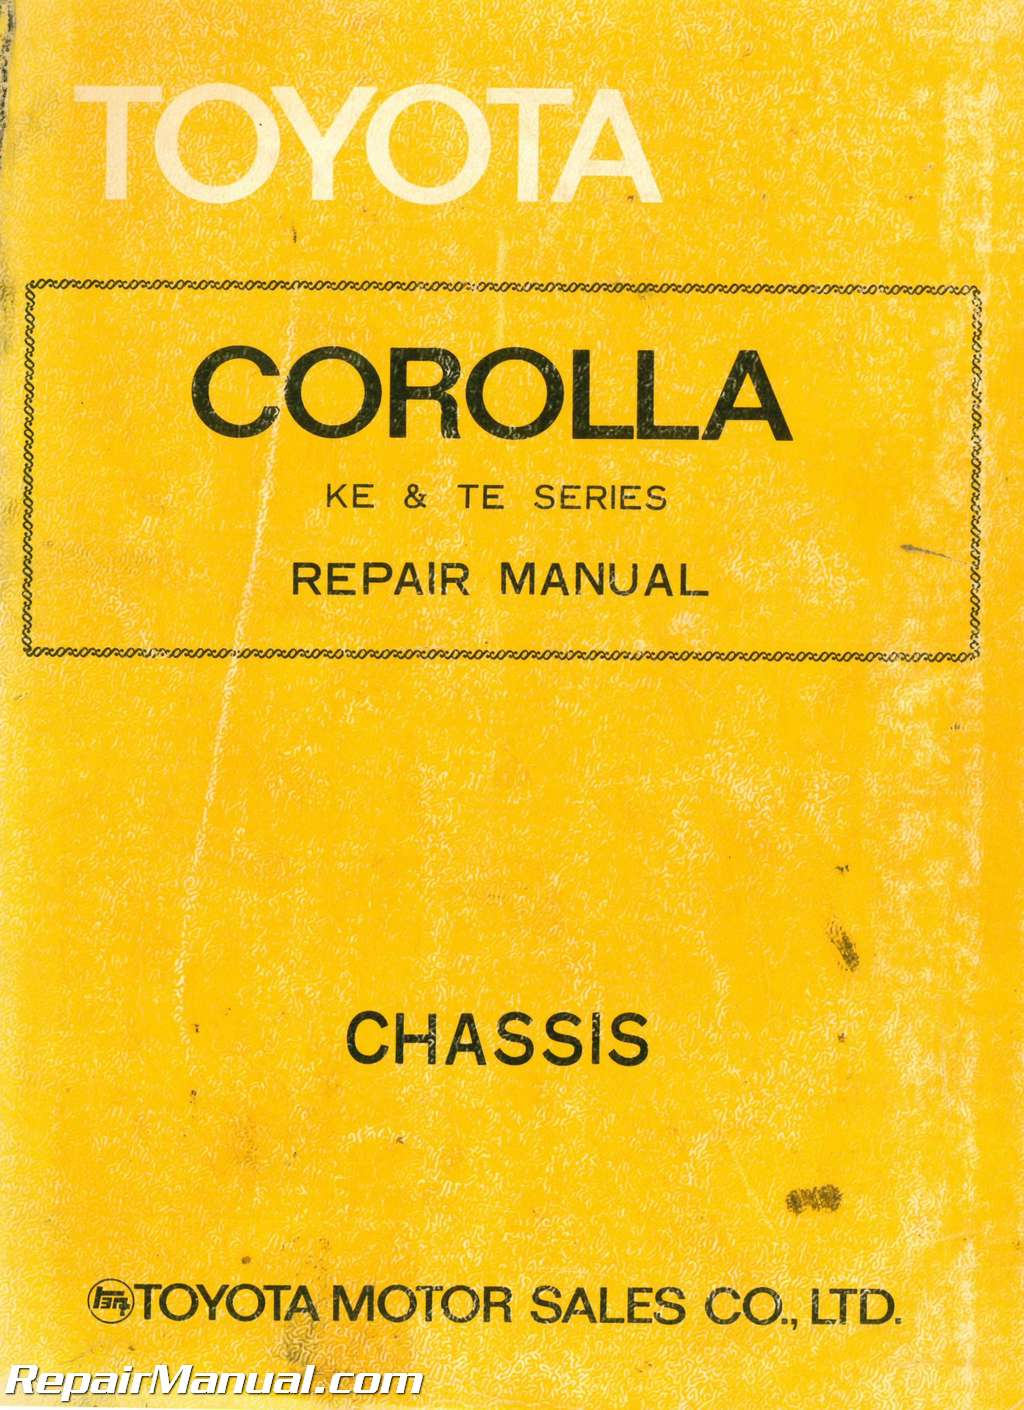 Toyota Corolla Repair Manual: Inspection procedure